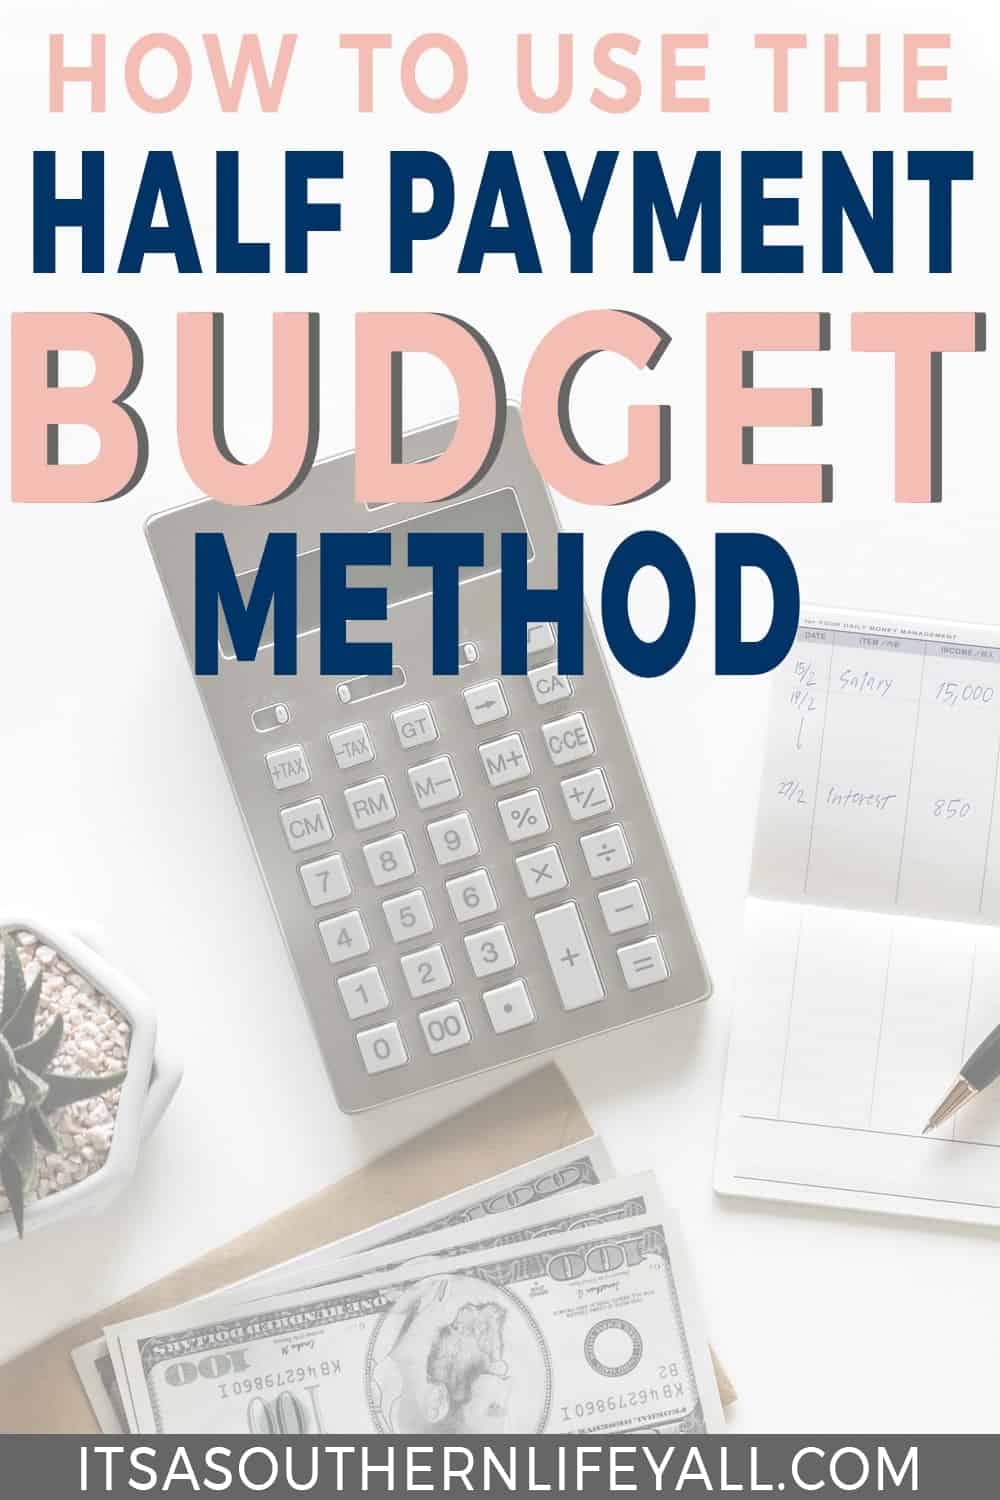 Calculator, money, and finances written on paper with How to Use the Half Payment Budget Method text overlay